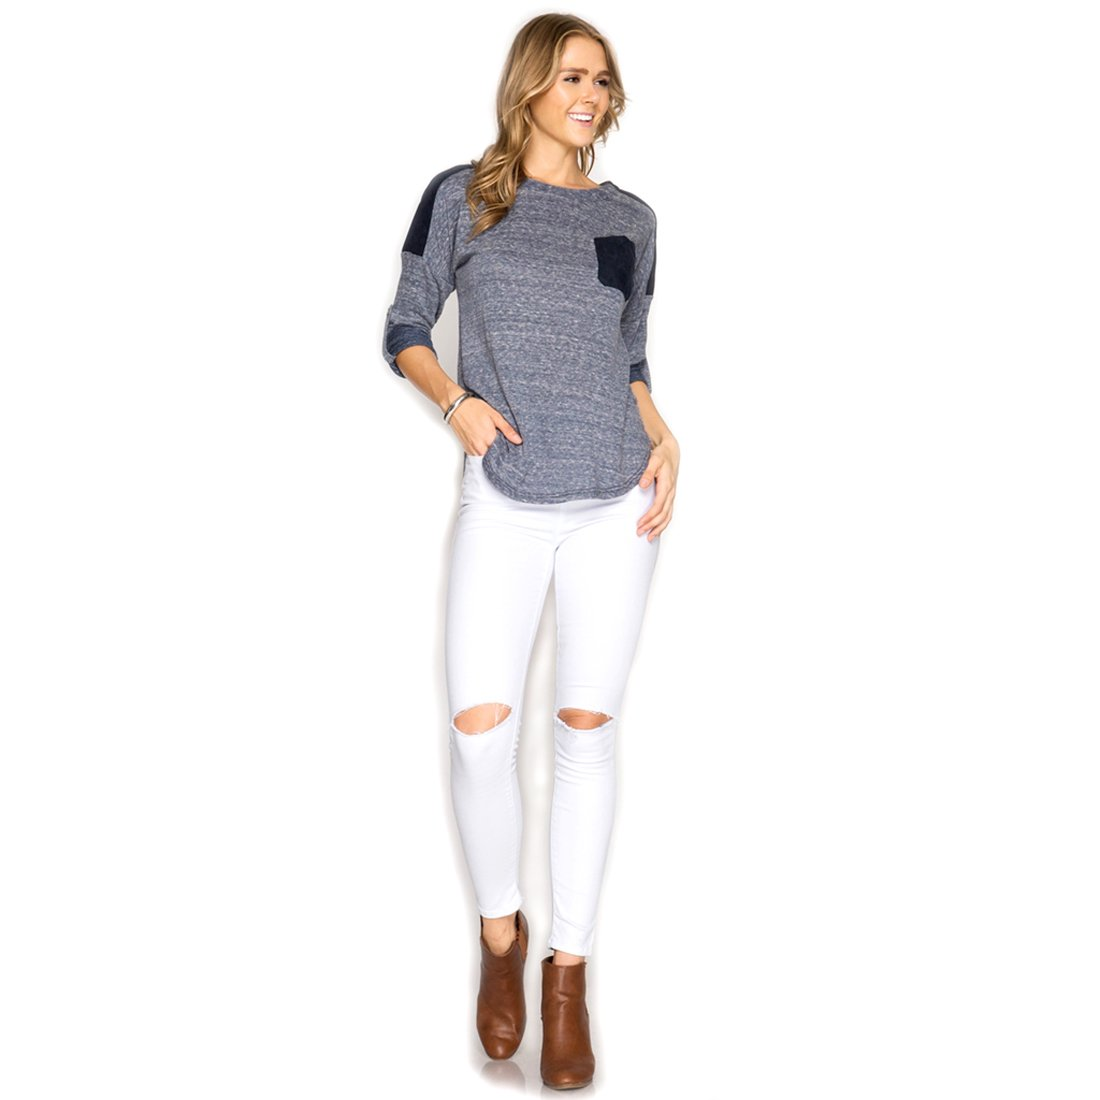 Large Sky Blue Long Roll-up Sleeve Terry Top w//Dark Faux Suede Accents She